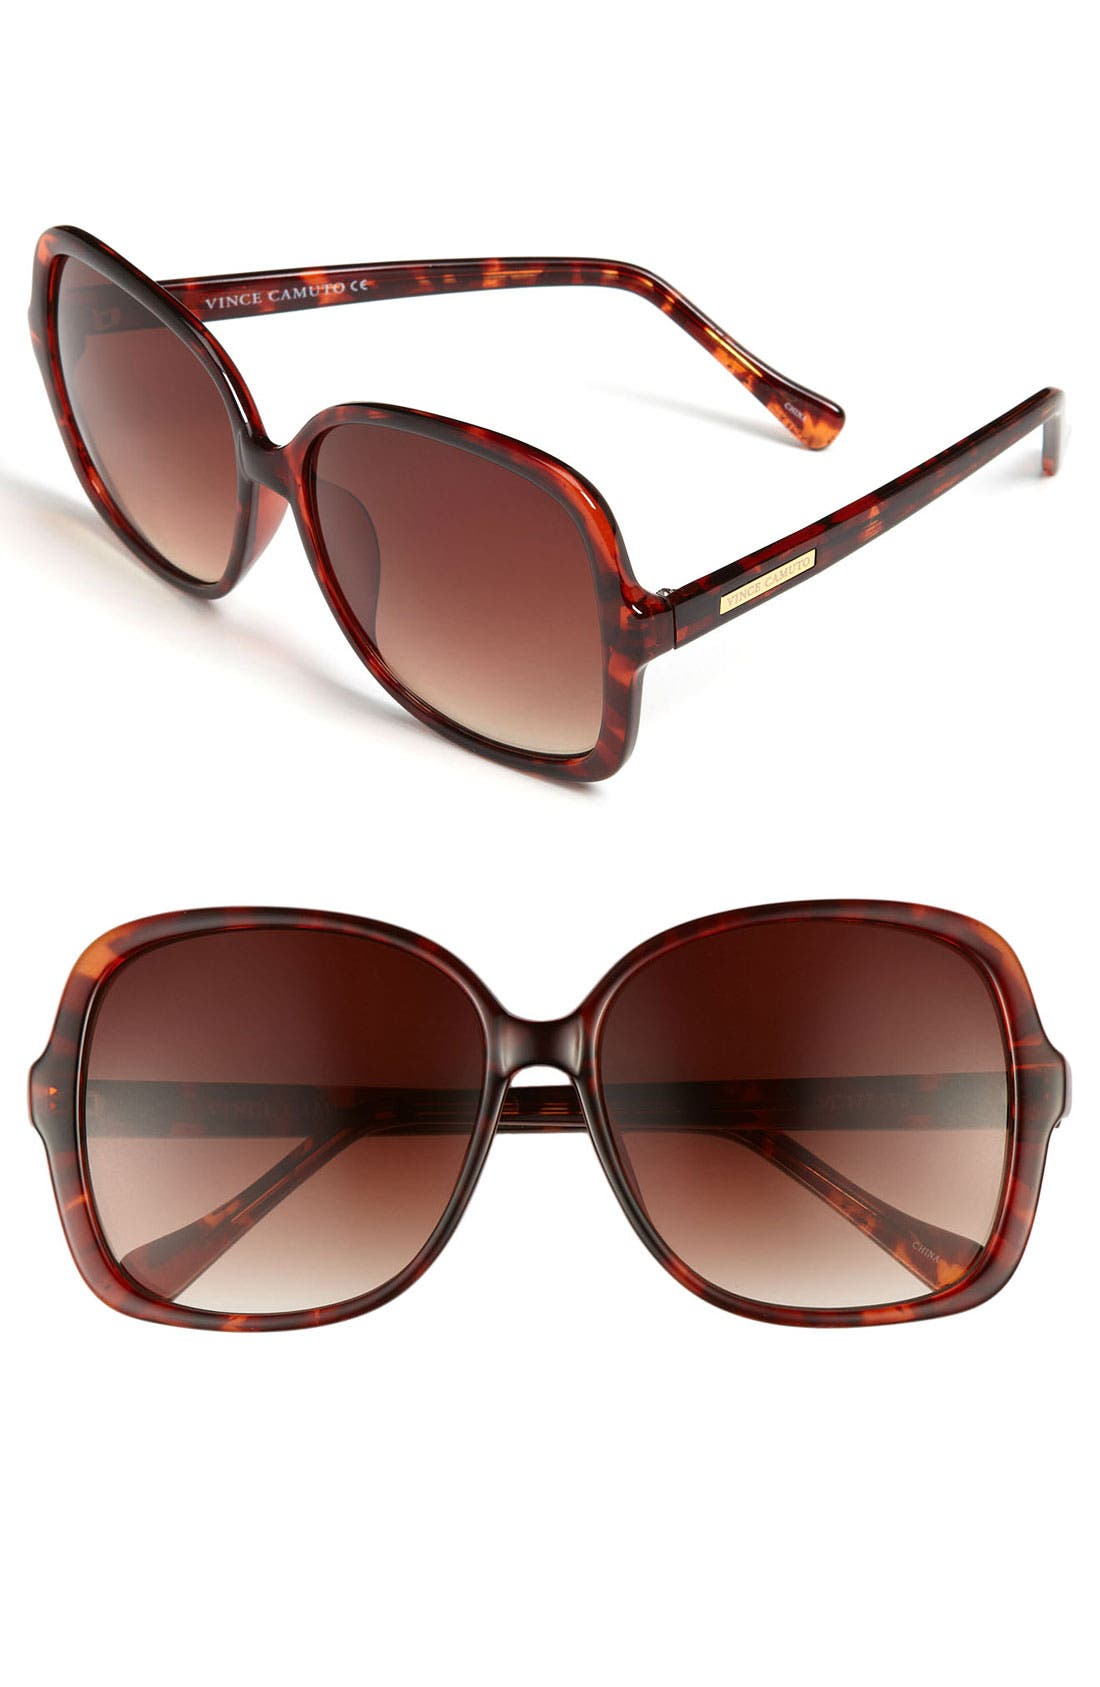 Main Image - Vince Camuto 60mm Gradient Sunglasses